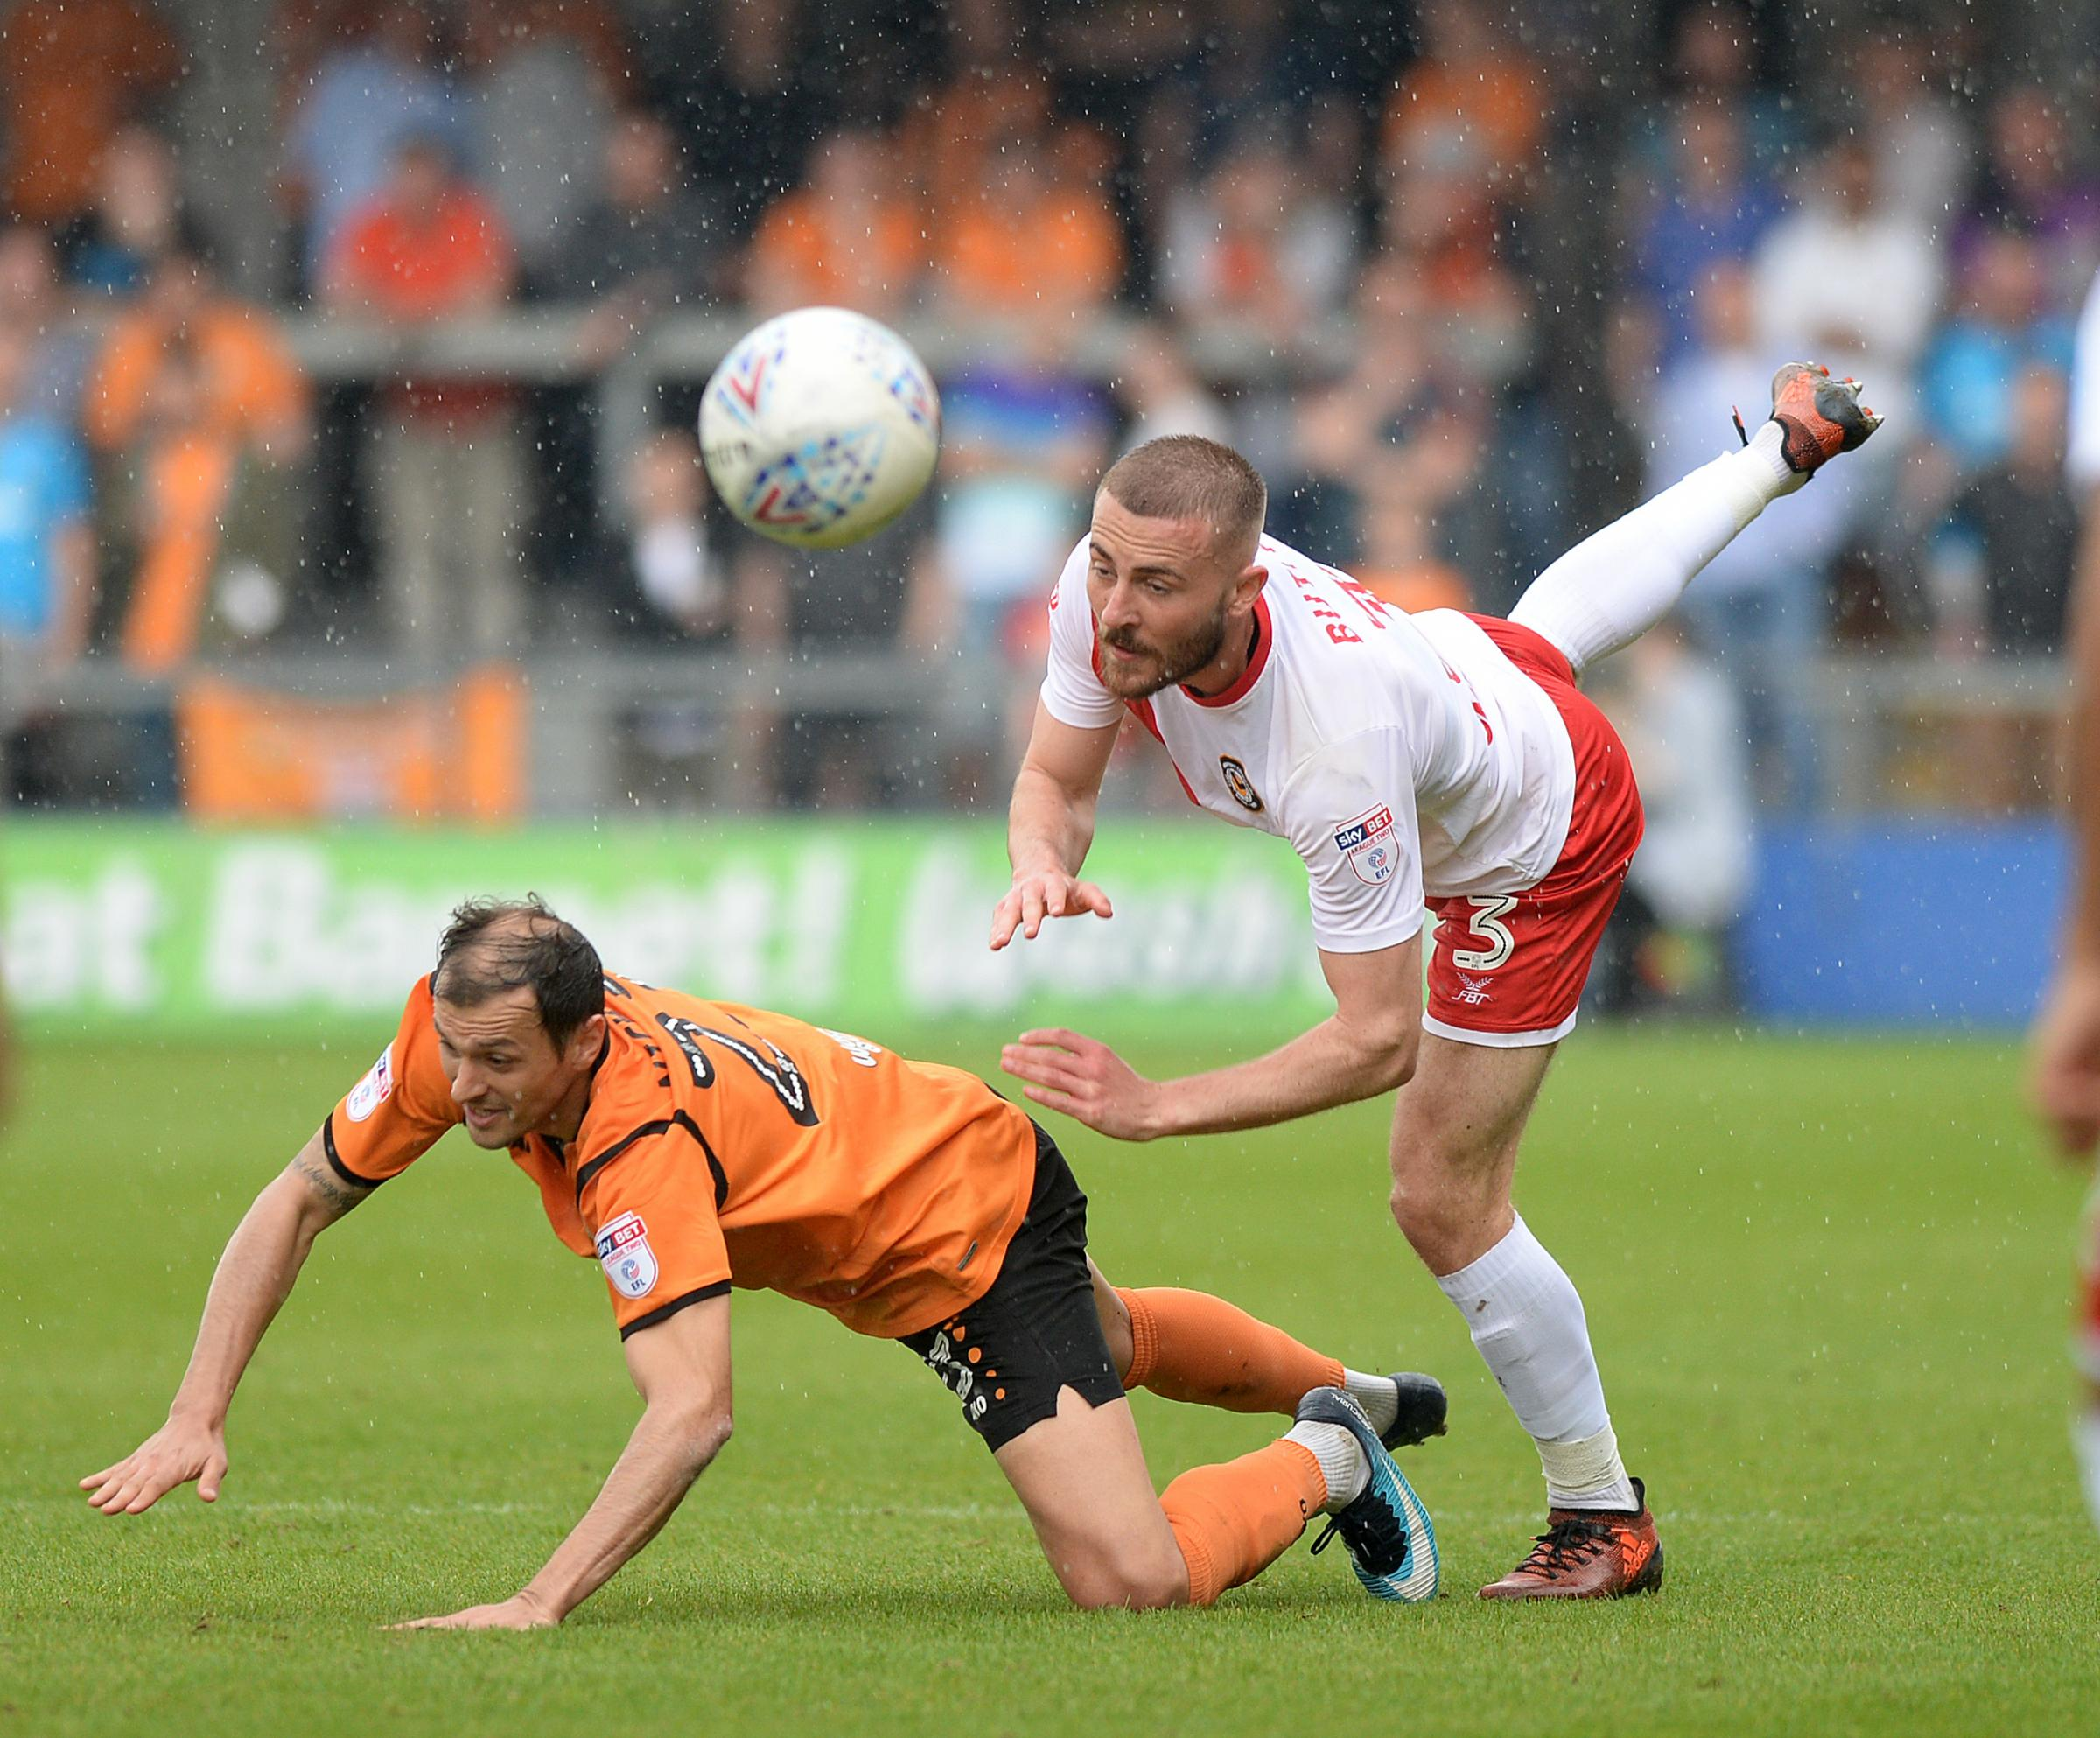 TUSSLE: Newport County defender Dan Butler in action at Barnet on Saturday. Pictures: Huw Evans Agency